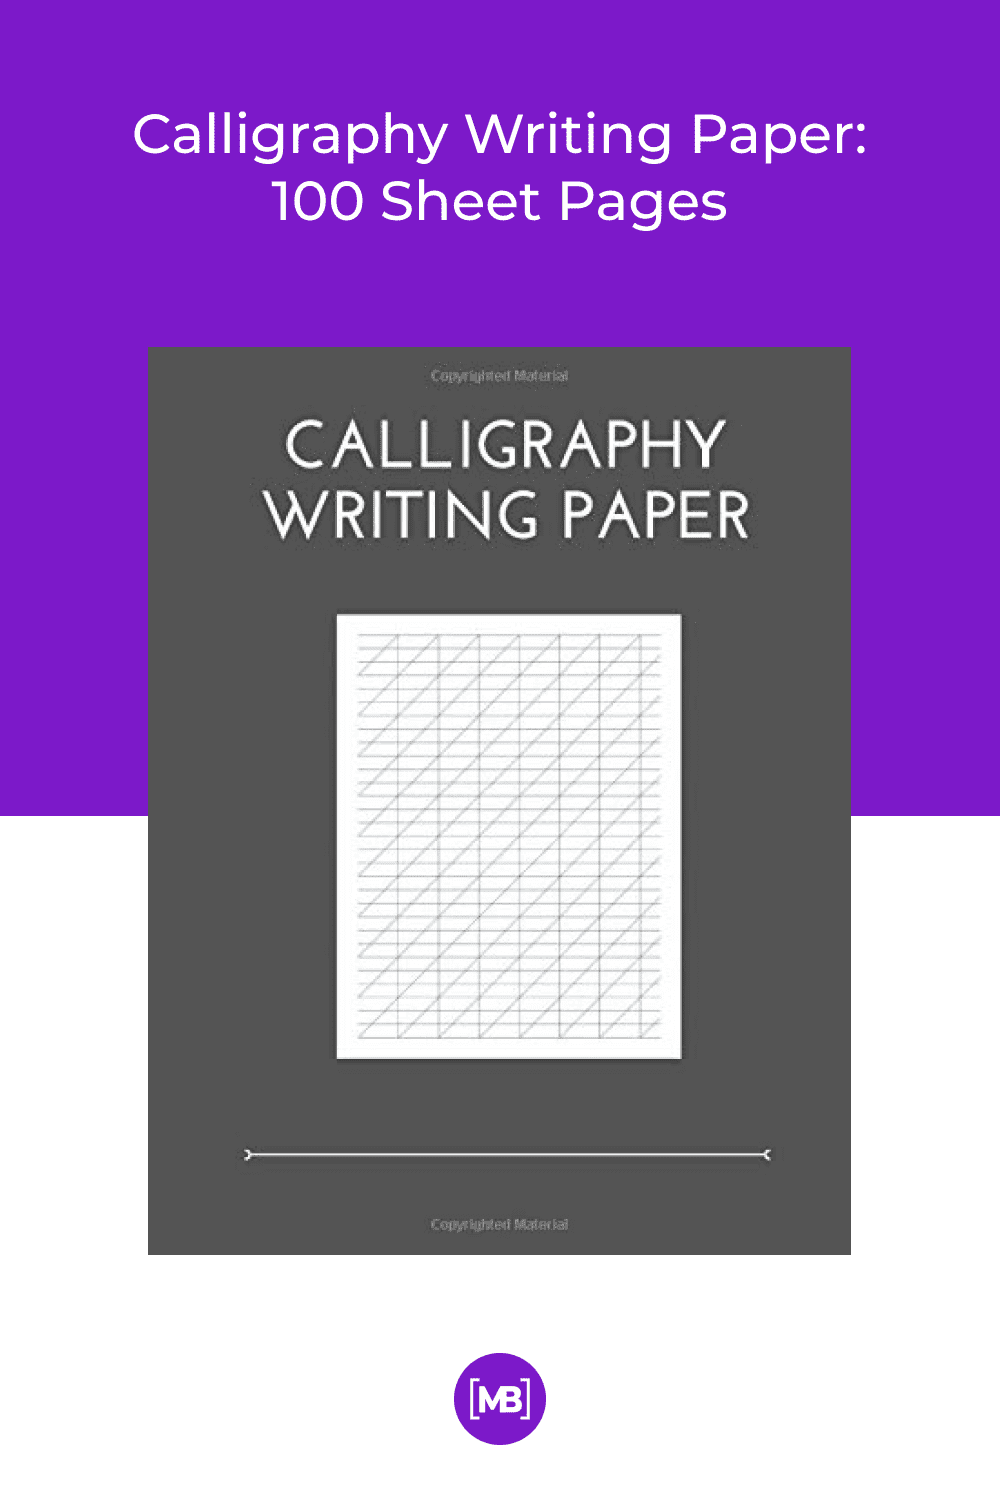 Now calligraphers can build their skill by practicing lettering on this artist-grade pad of calligraphy paper.